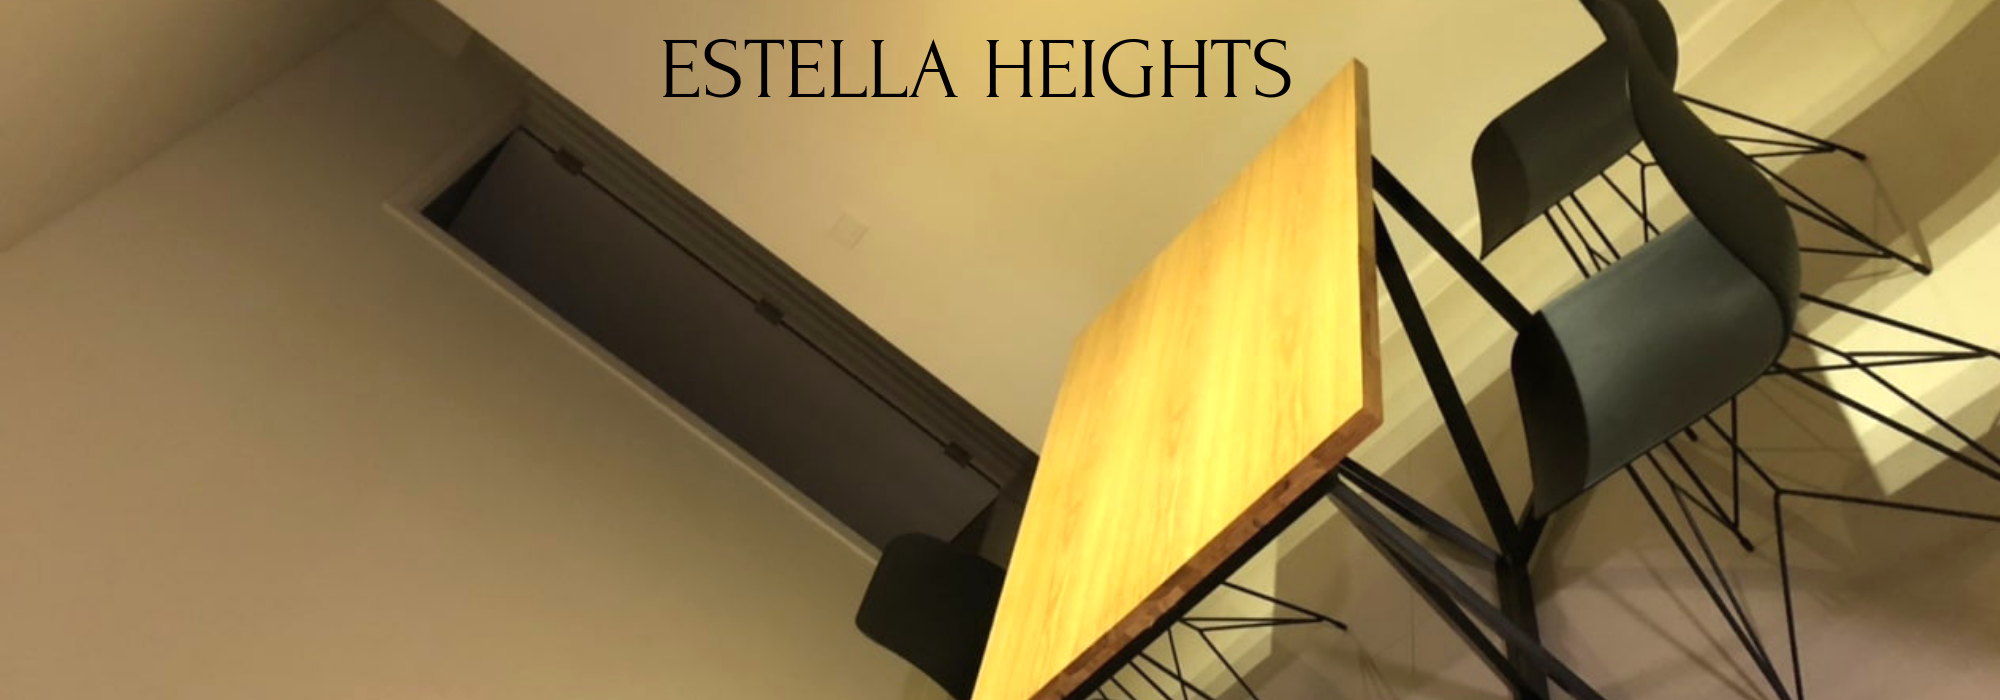 Estella Heights for rent – the best price for 2 Bedroom Apartment